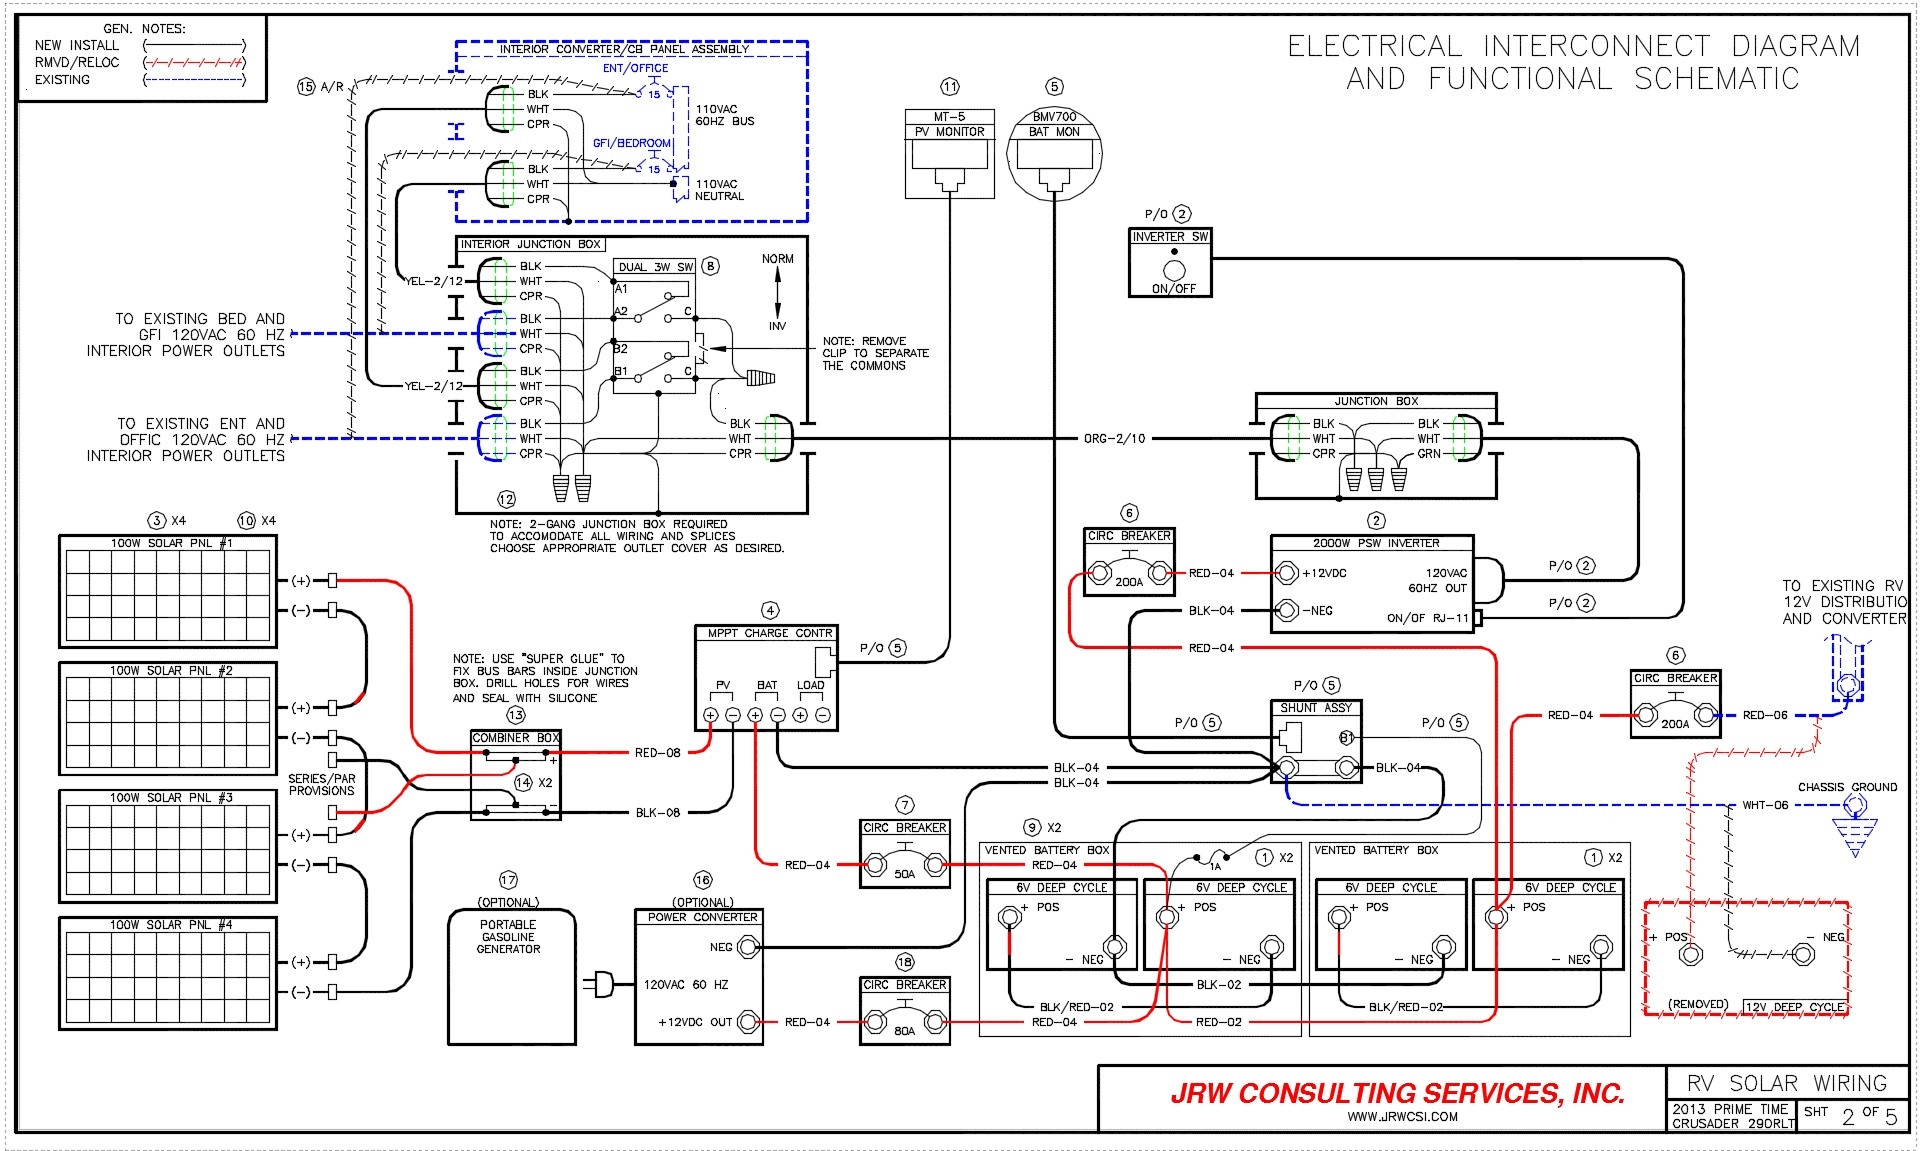 rv thermostat wiring diagram Download-Wiring Diagram Keystone Cougar Inspirational Rv Holding Tank Wiring Diagram Unique Wiring Diagram Od Rv Park 14-d